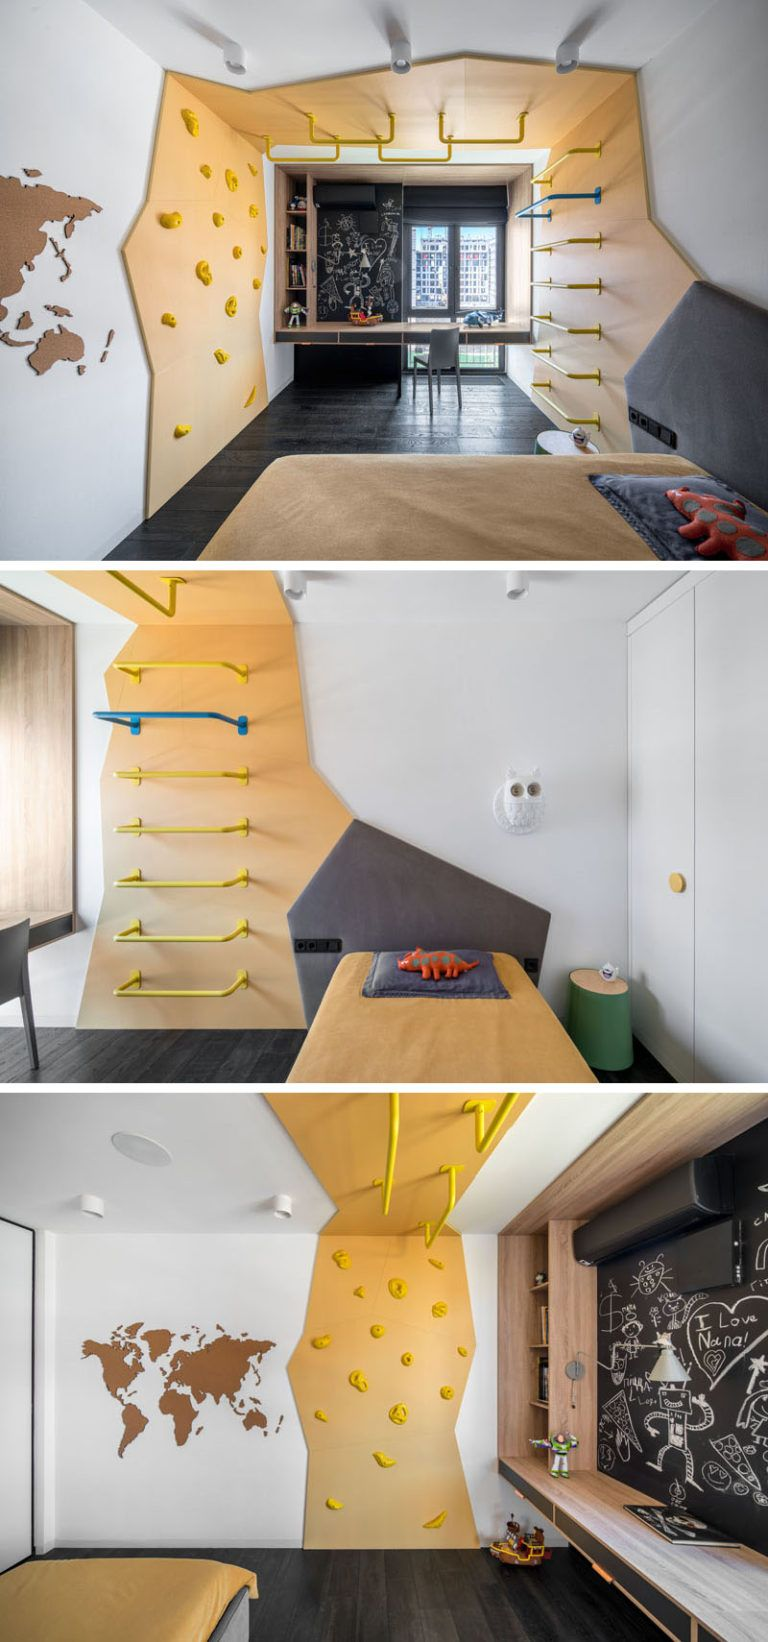 Two Apartments Were Combined To Make One Large Apartment For A Family